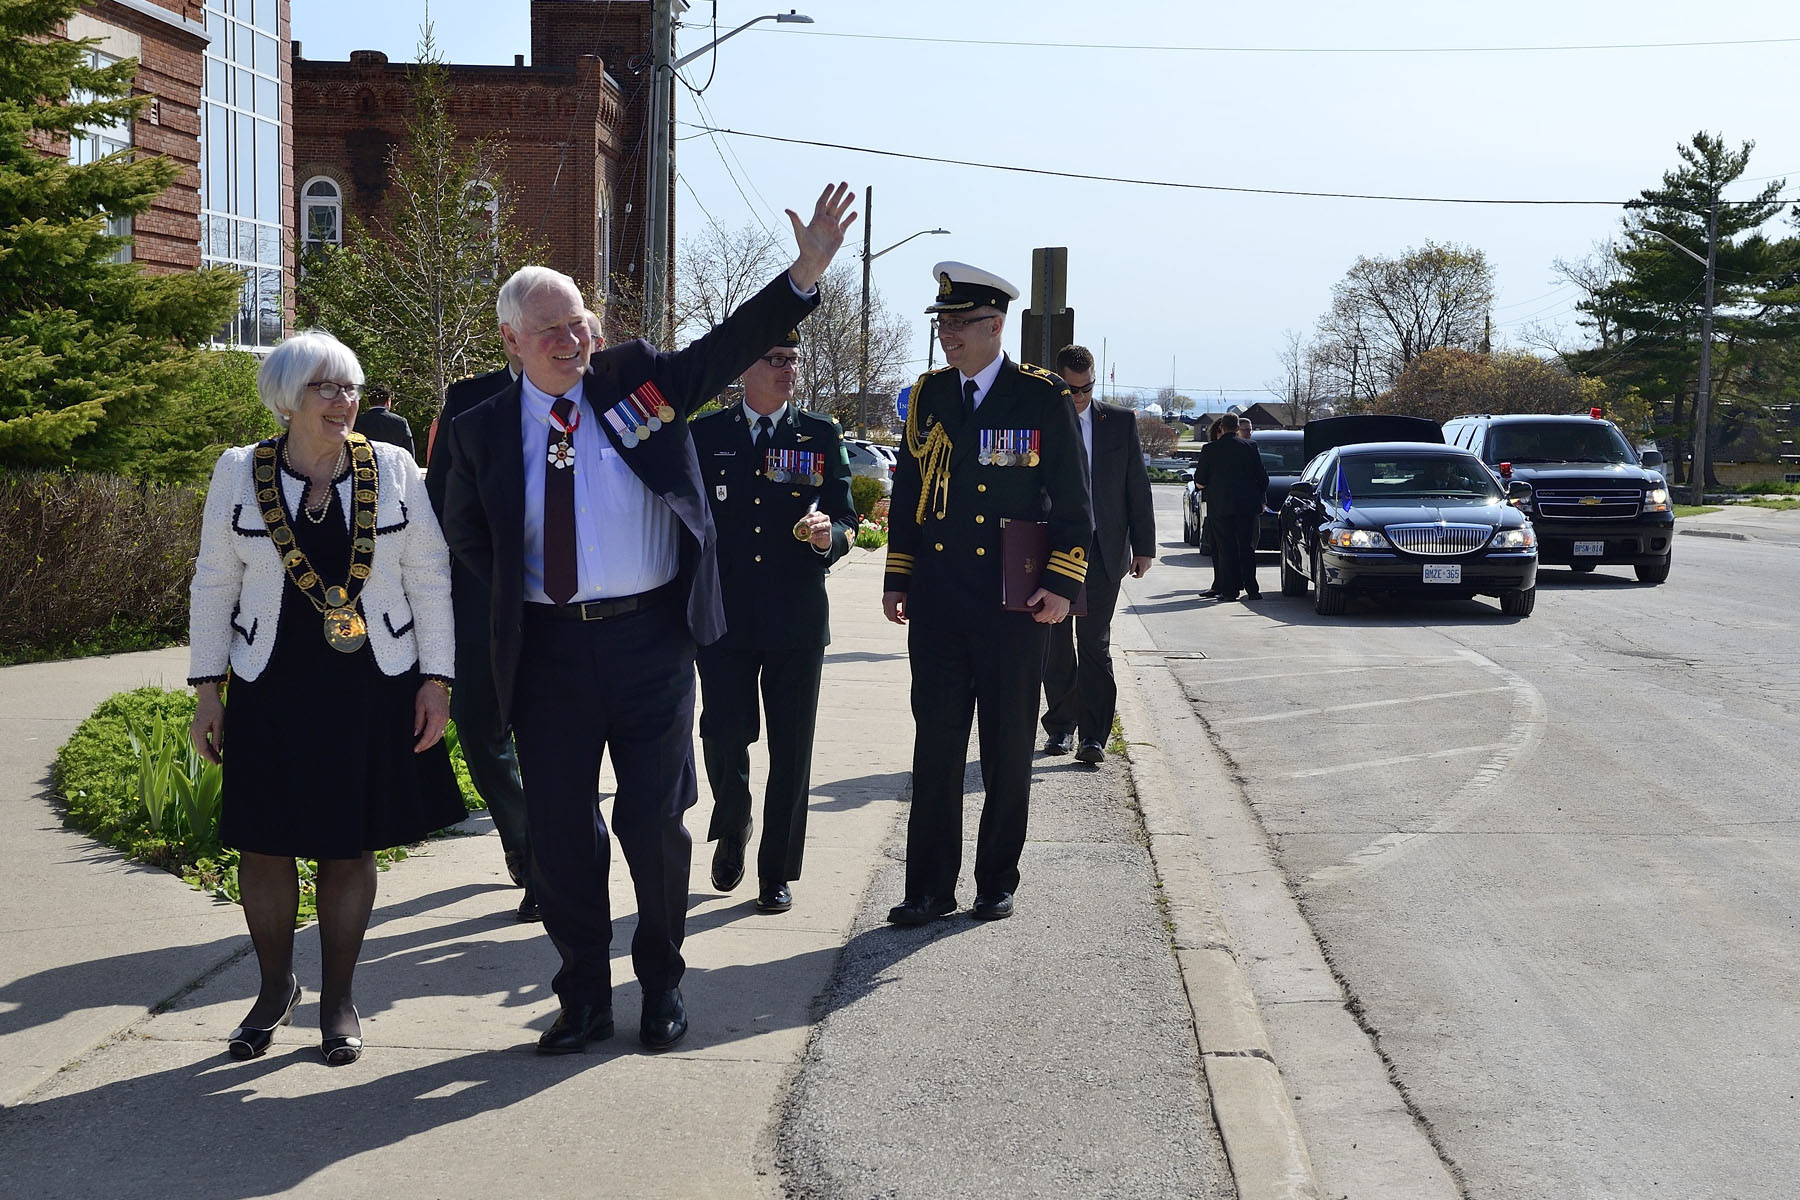 His Excellency the Right Honourable David Johnston, Governor General of Canada visited Meaford and Owen Sound. Upon arrival in Meaford, His Excellency was greated by Her Worship Barbara Clumpus.